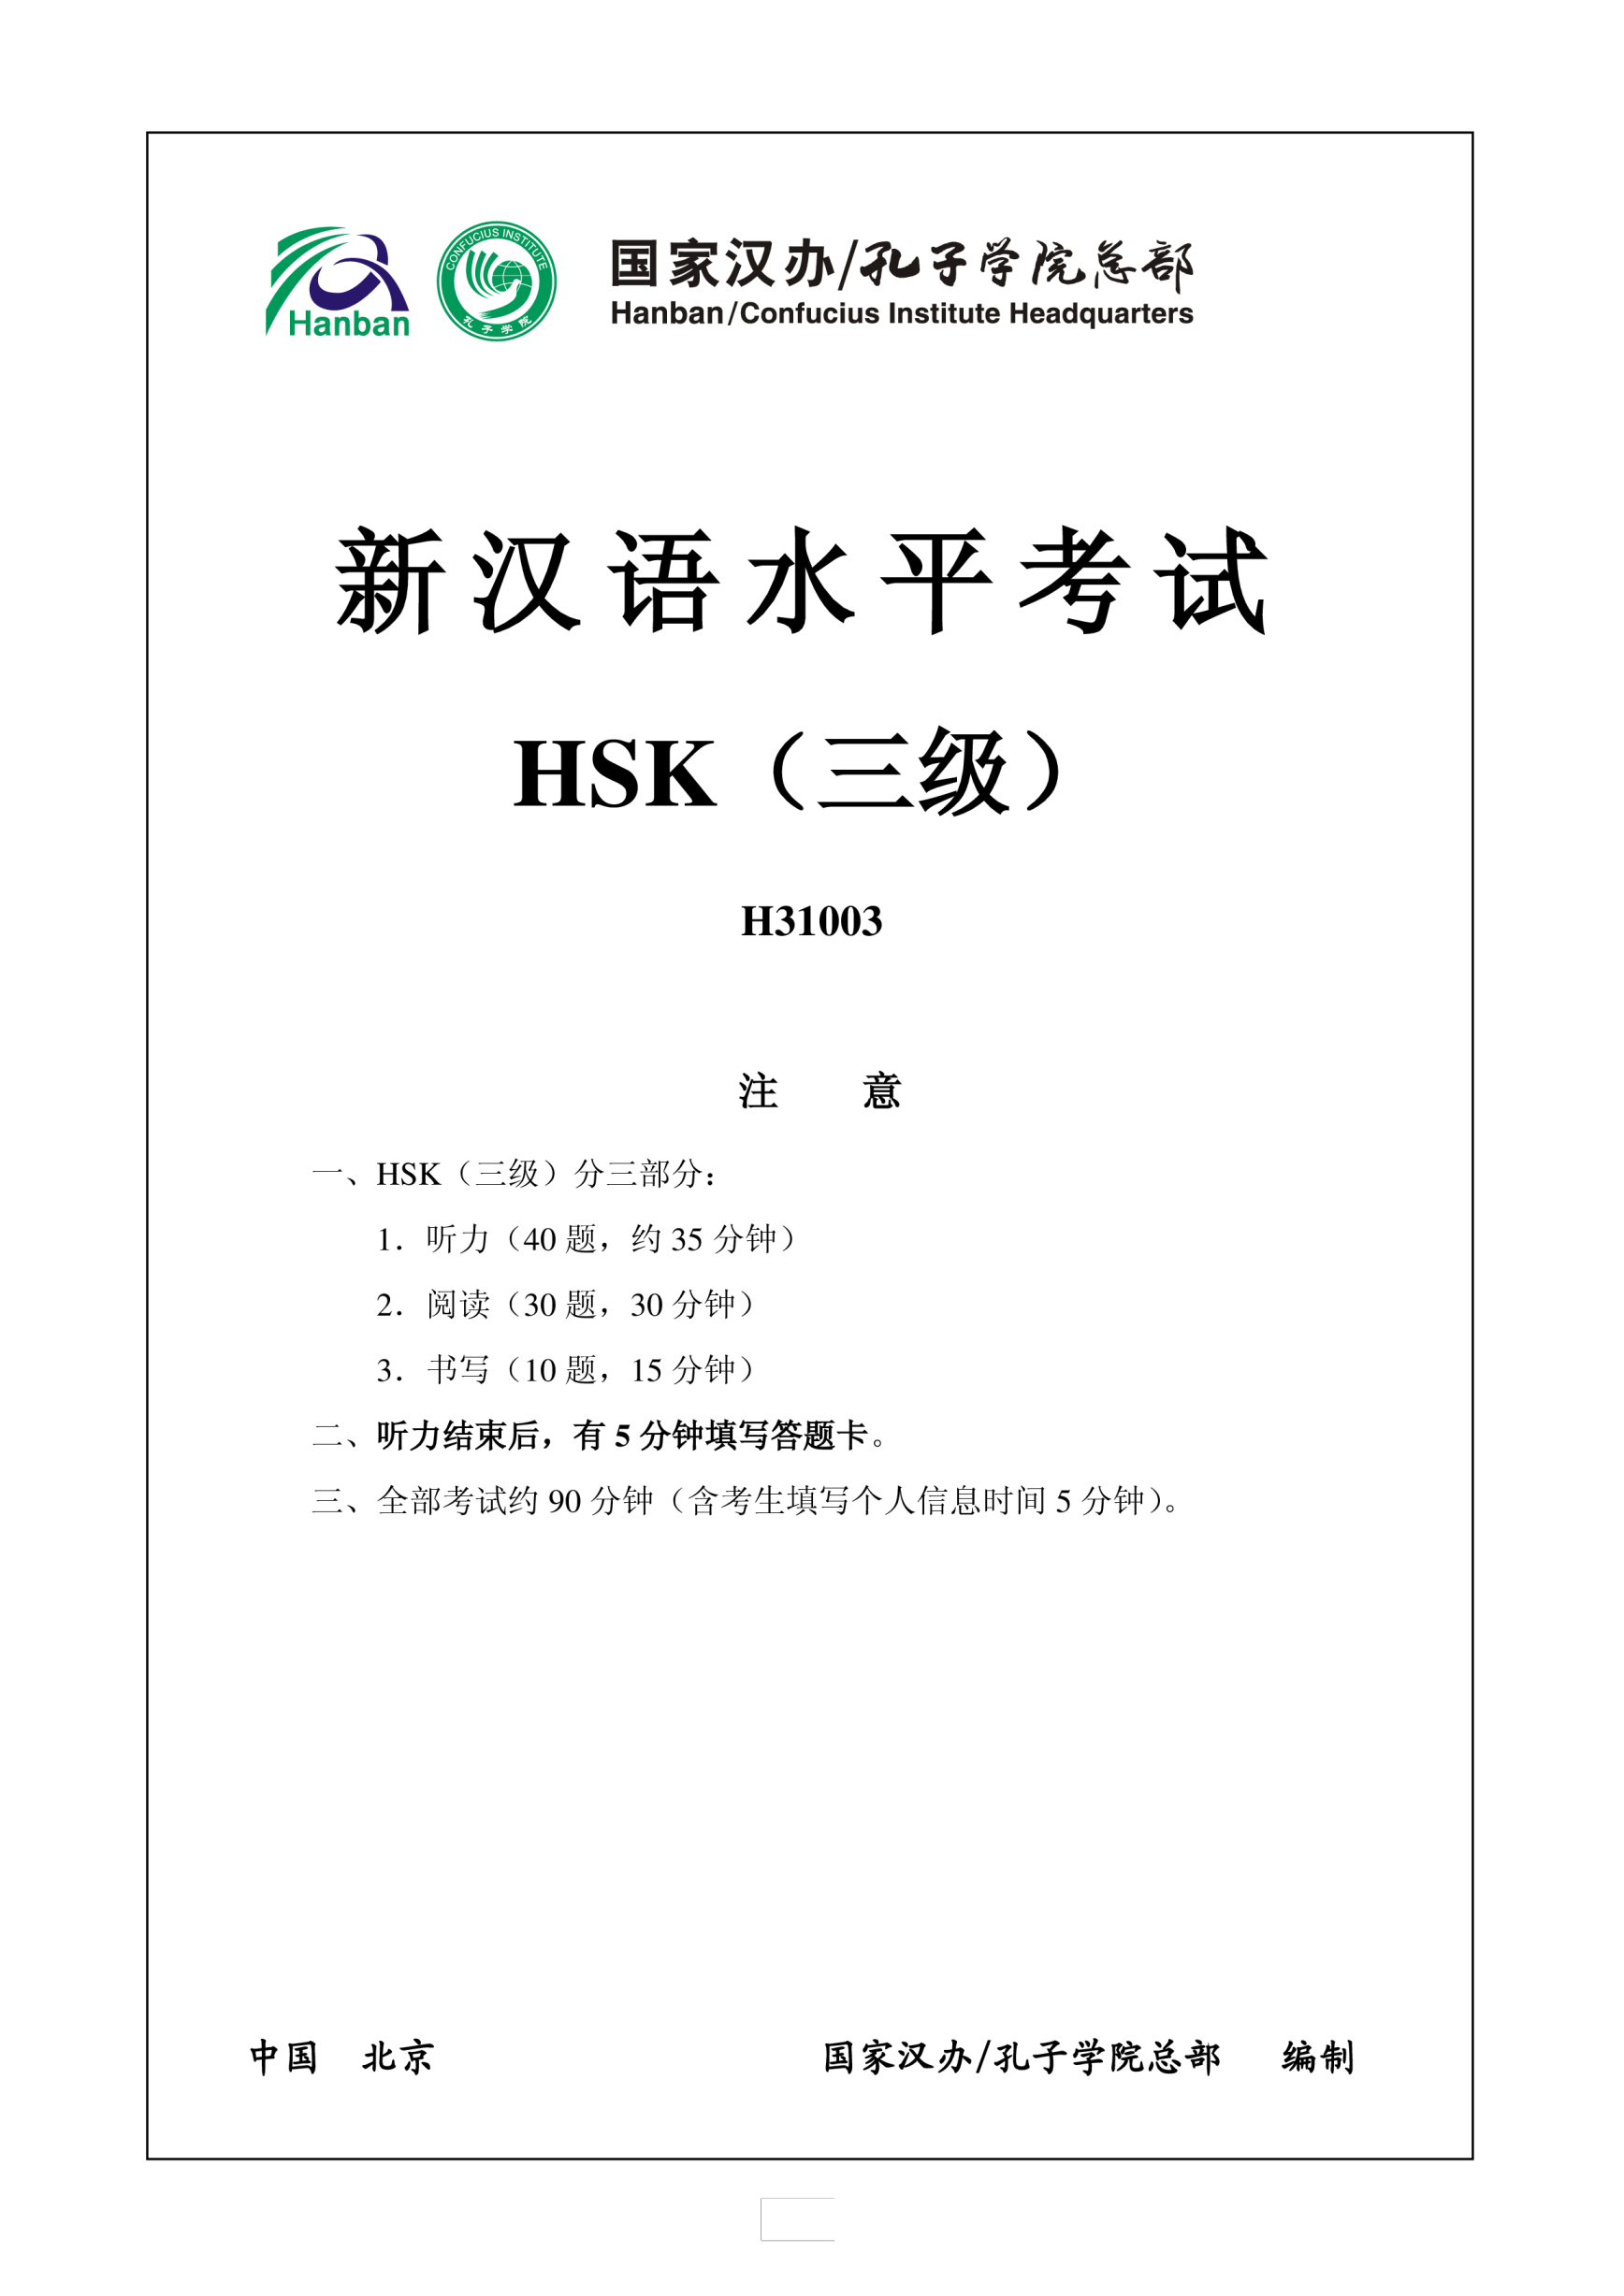 template preview imageHSK3 Chinese Exam including Answers # HSK3 H31003